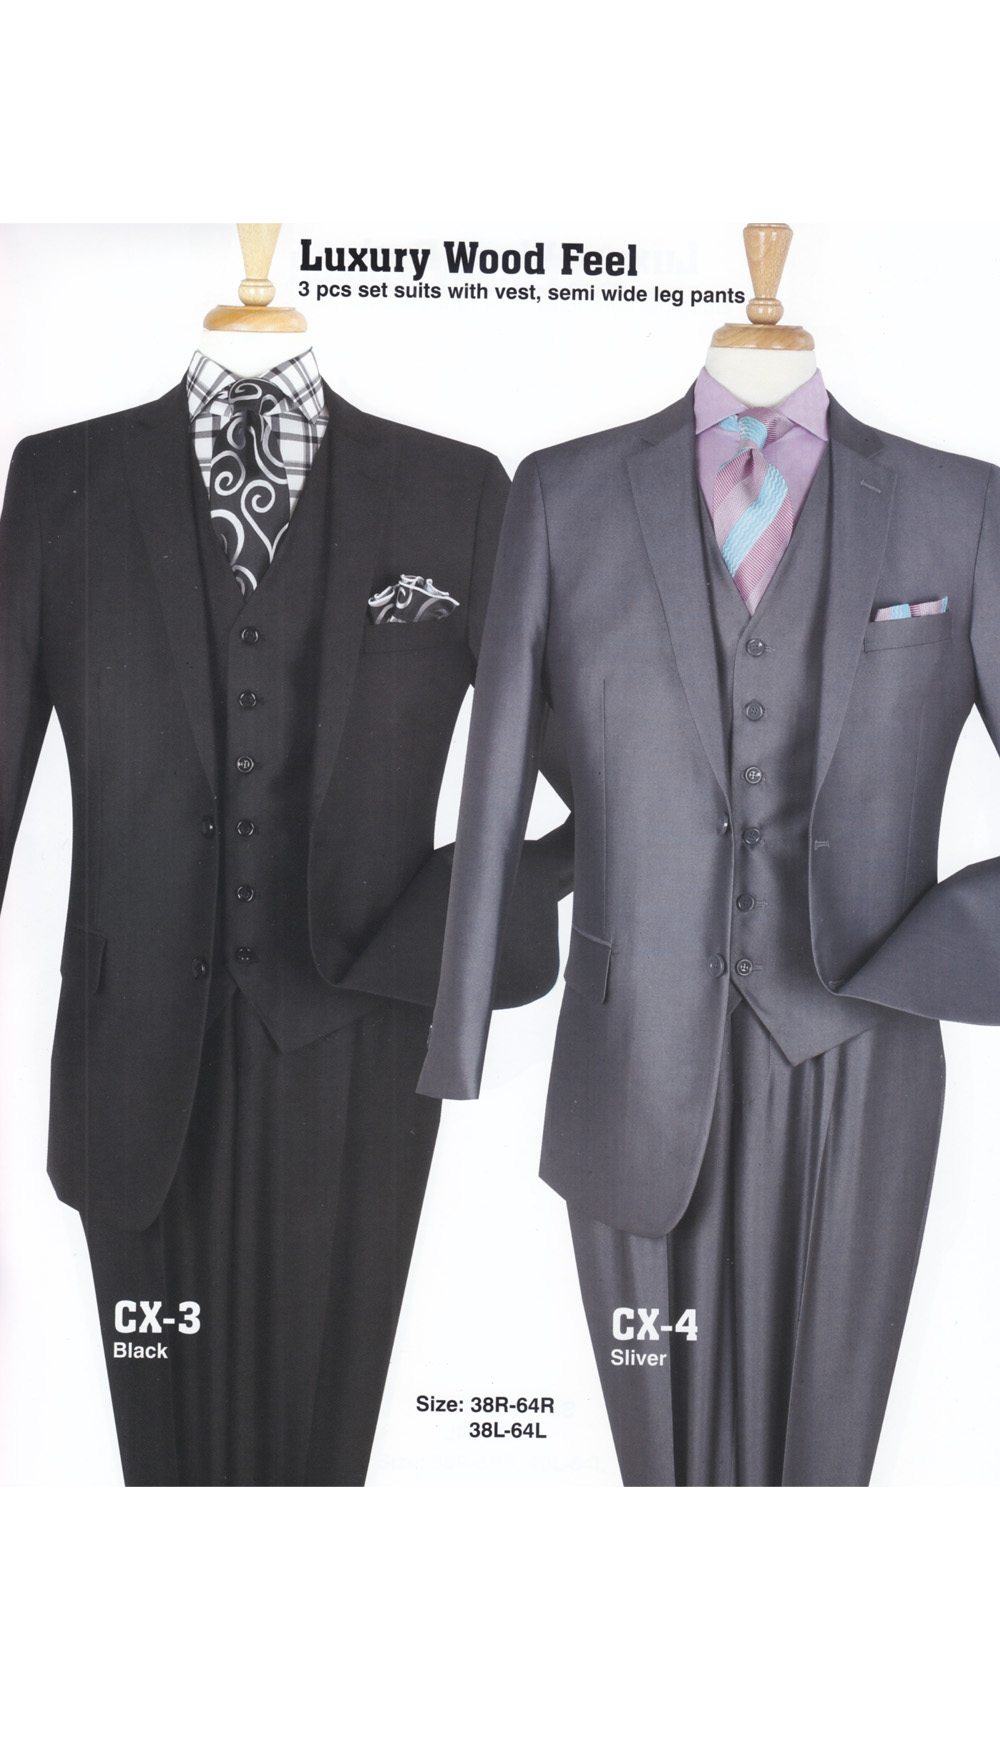 High Fashion Men Suits CX-4